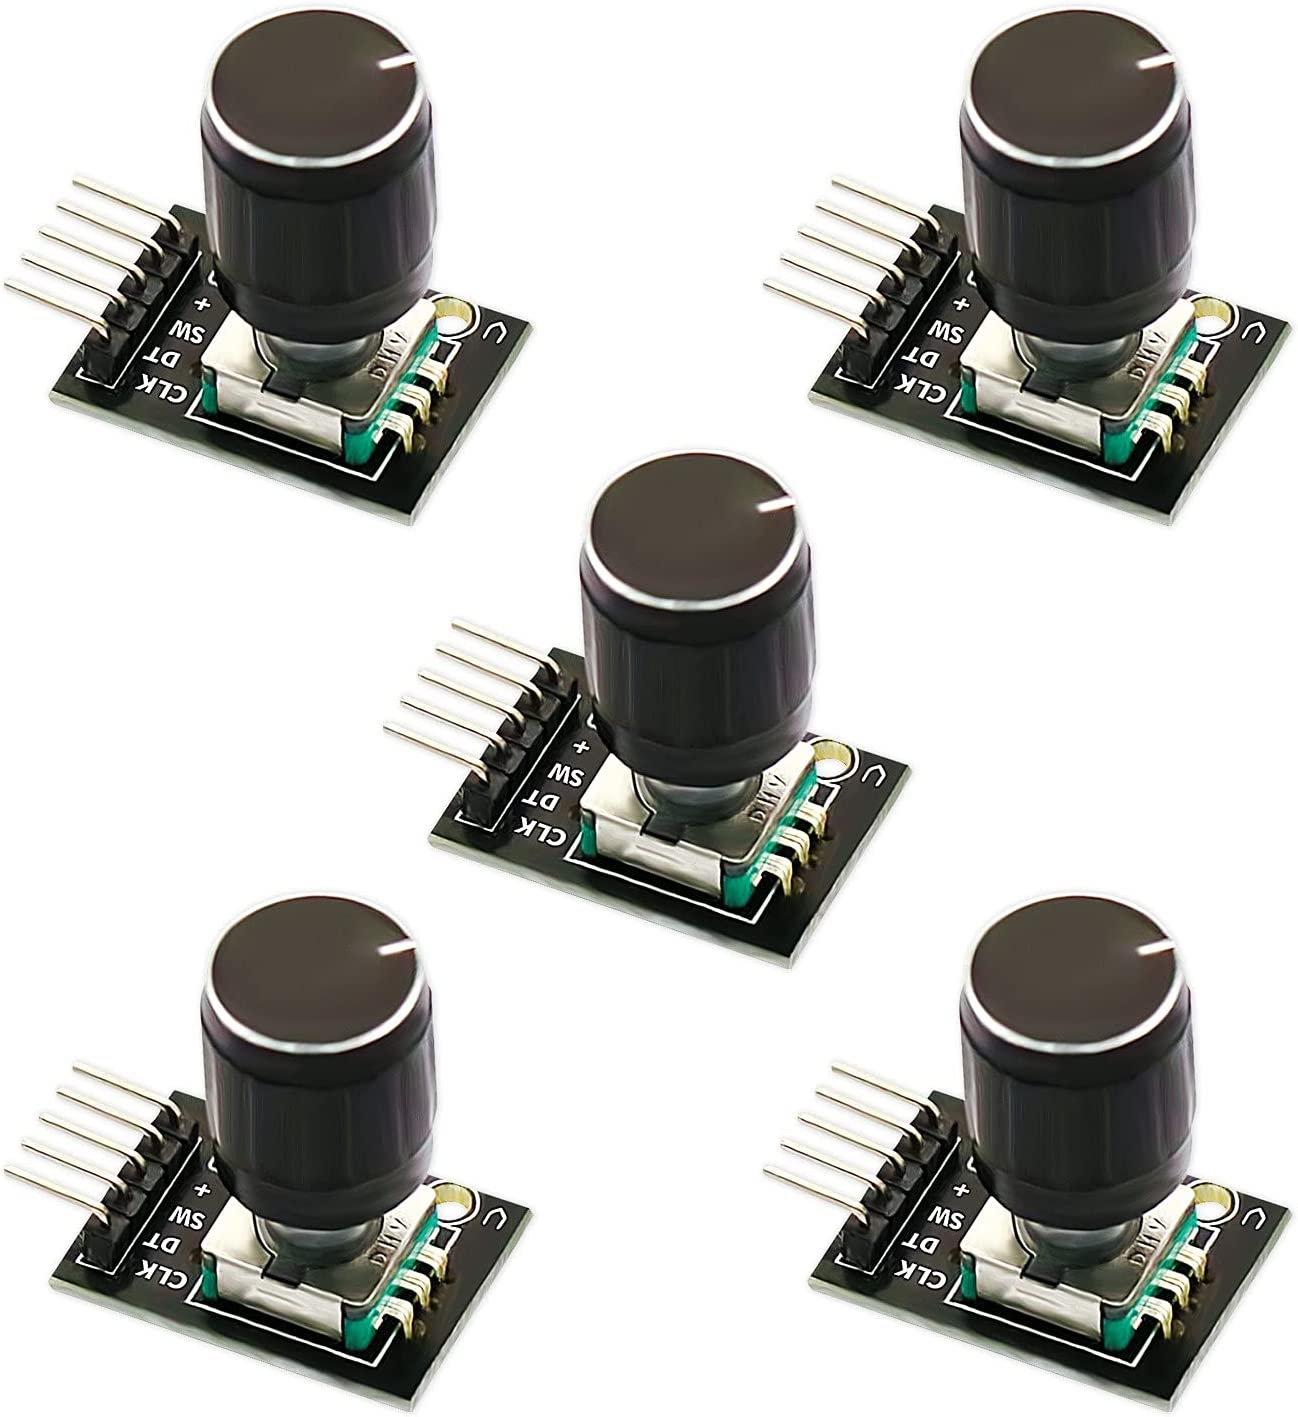 CenryKay 5-Pack Choice KY-040 Rotary Enco SEAL limited product Digital Encoder Module